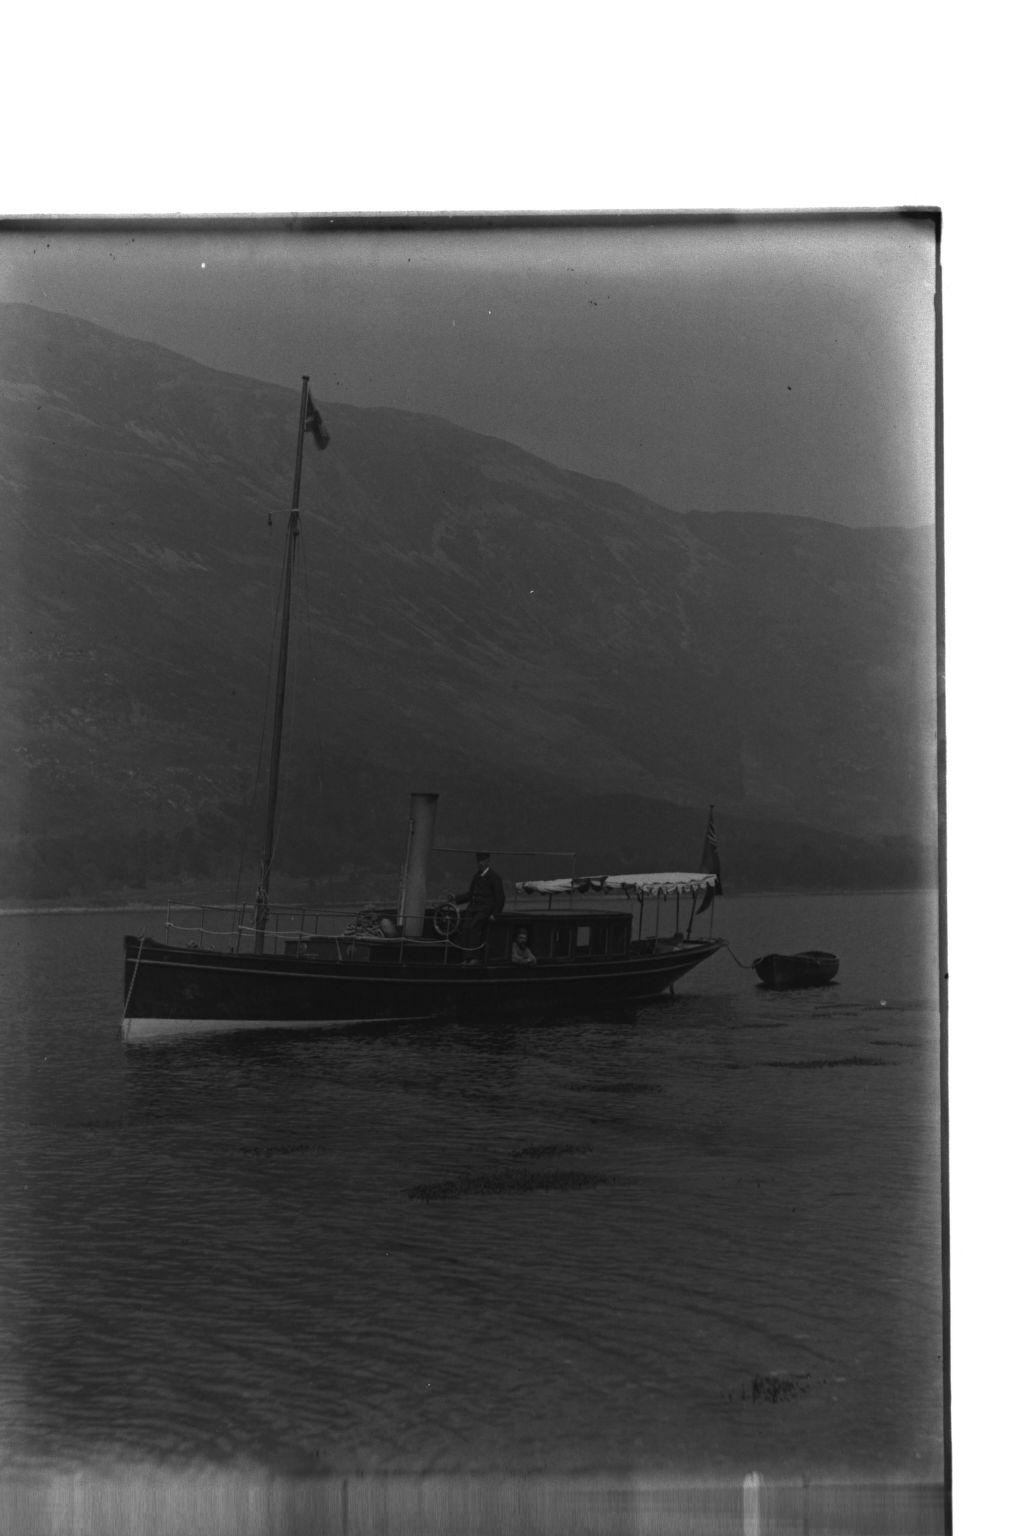 The Launch [Netta with Captain McIntyre at the wheel, Loch Leven].